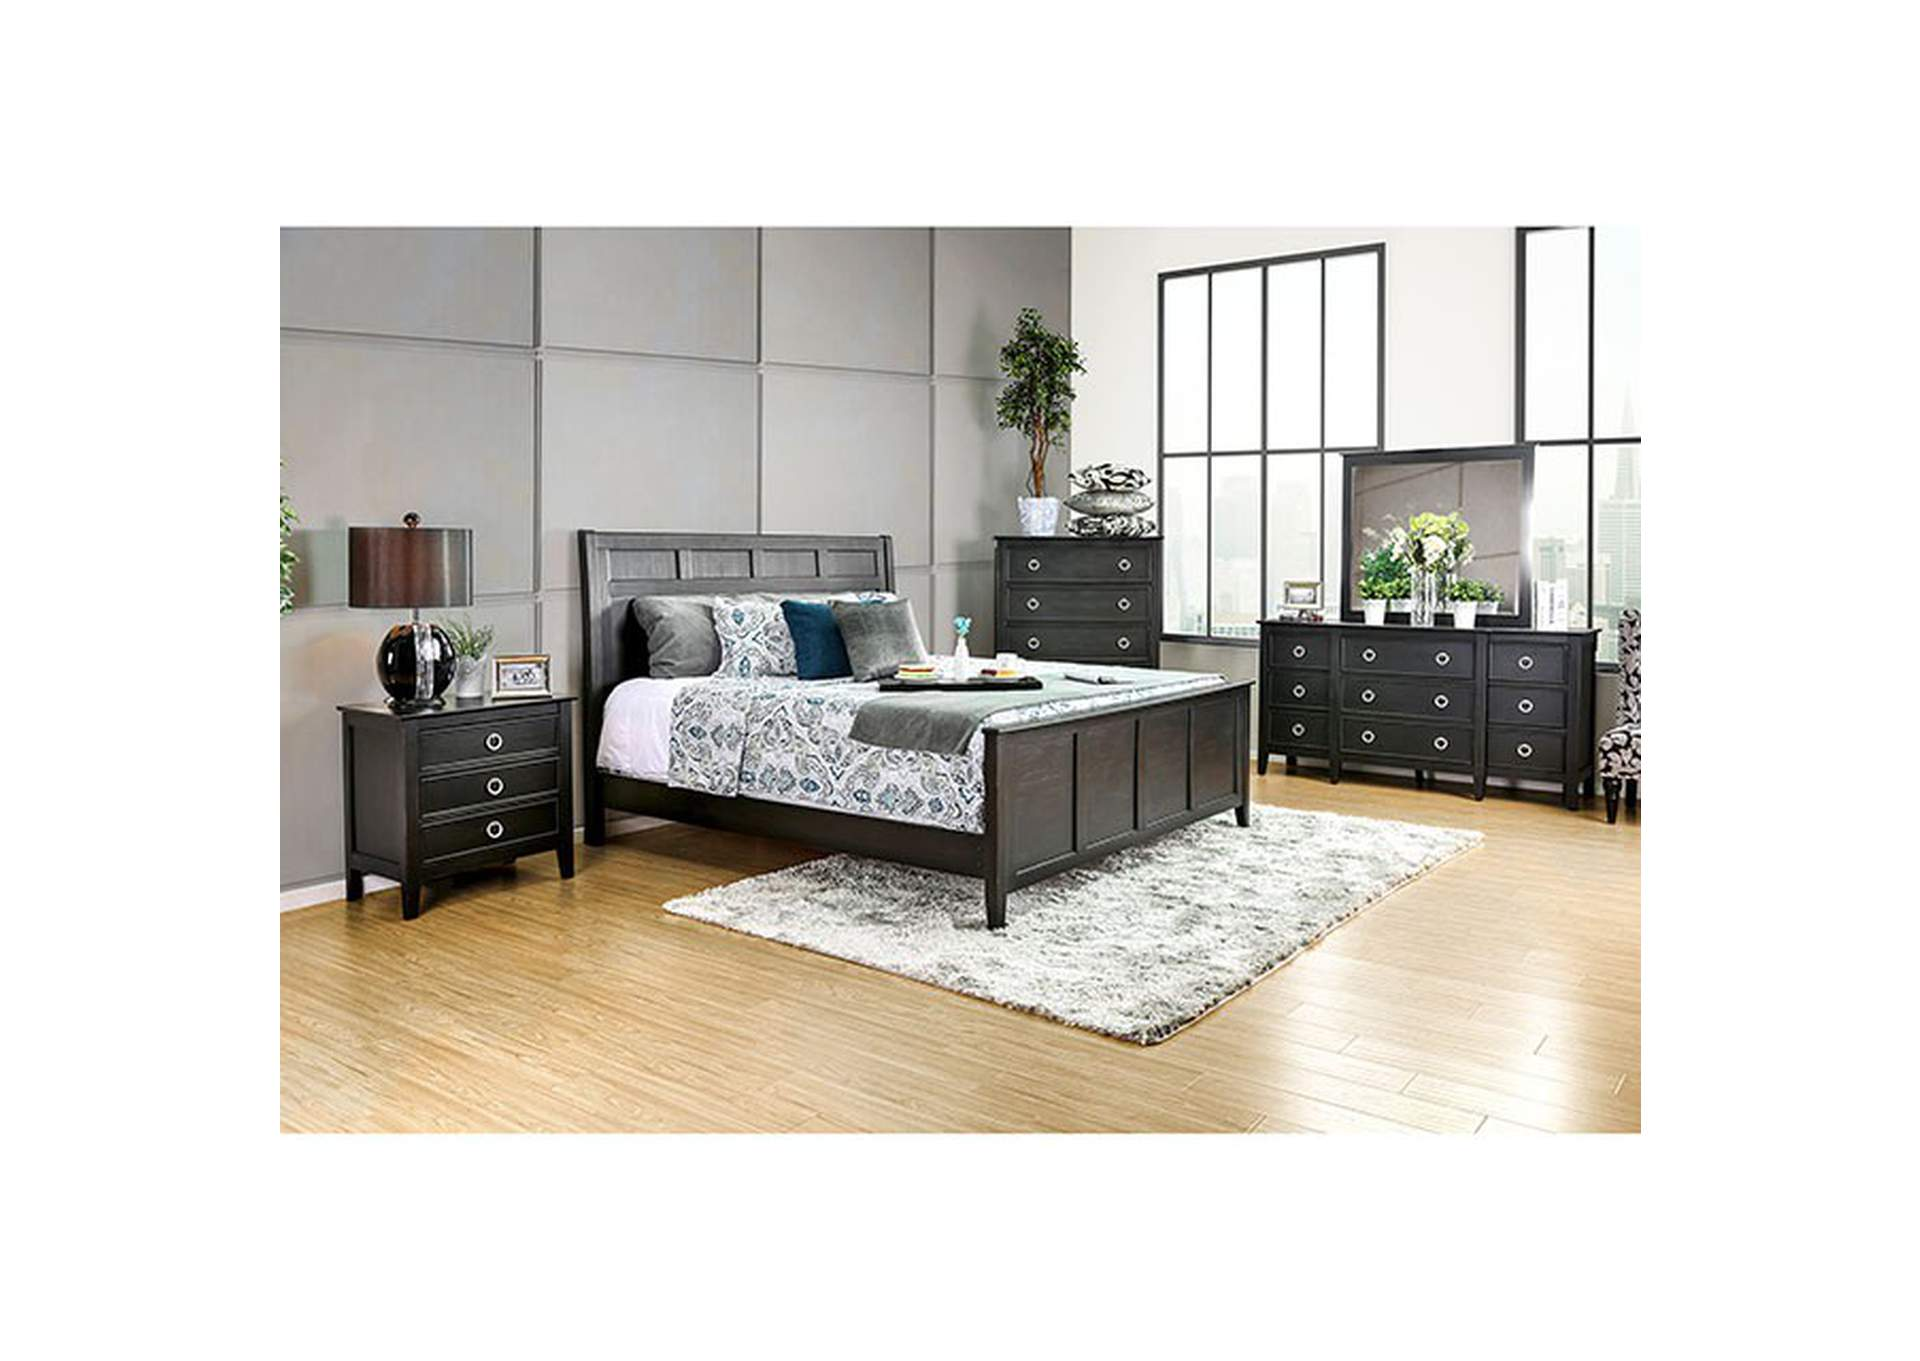 Arabelle Wire-Brushed Black Queen Panel Bed w/Dresser, Mirror, Drawer Chest and Nightstand,Furniture of America